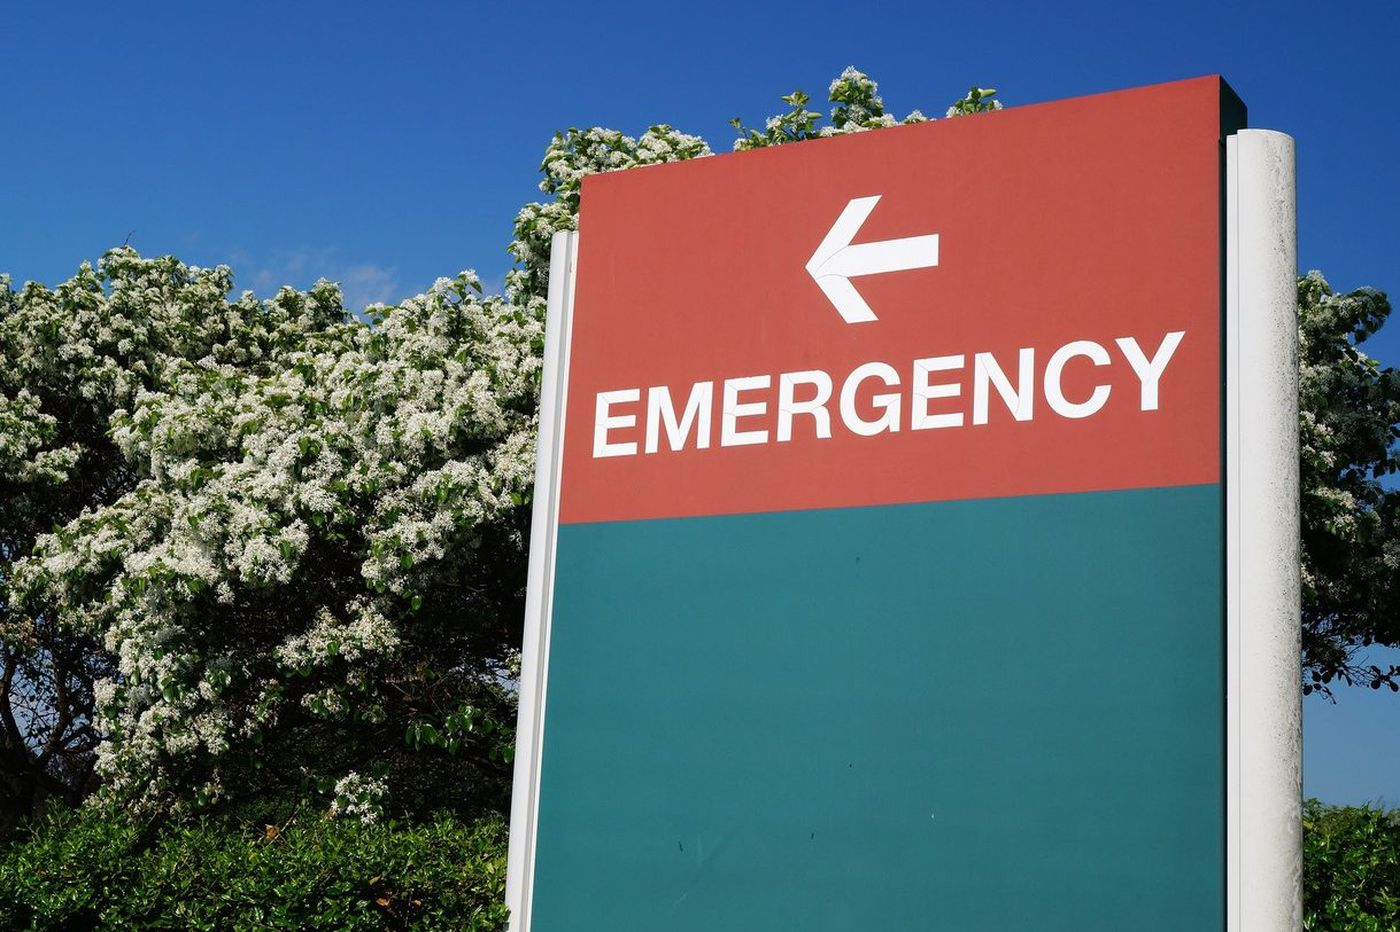 An E.R. doctor on 'surprise billing' for emergency care